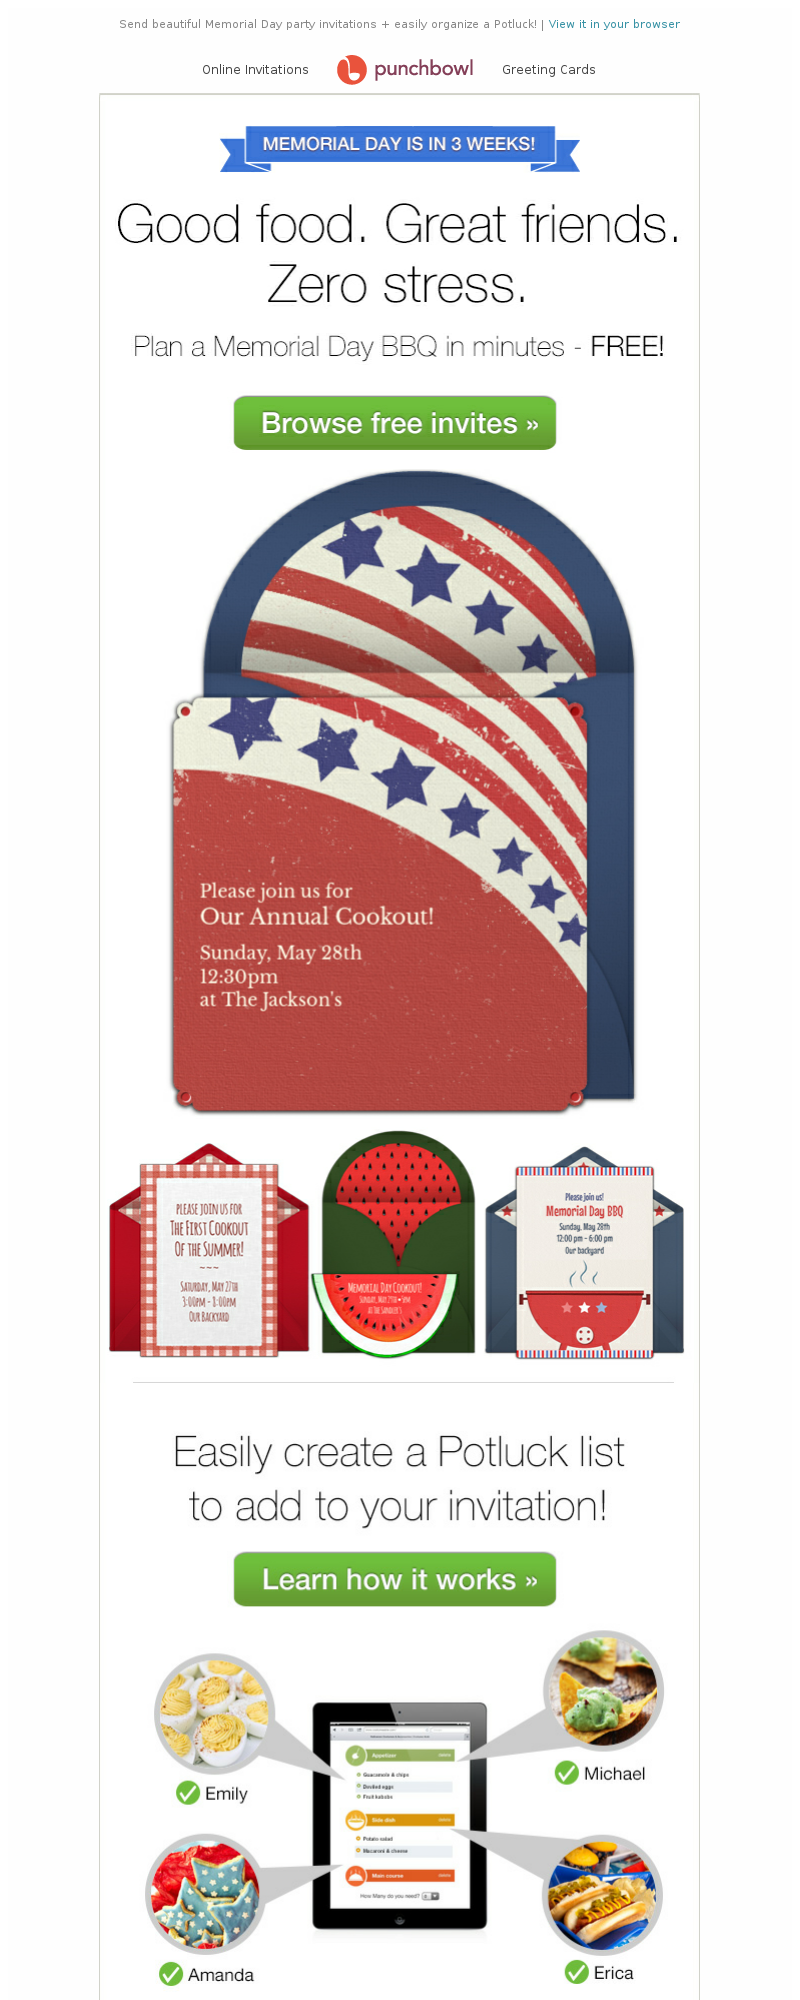 Send beautiful Memorial Day party invitations + easily organize a Potluck!